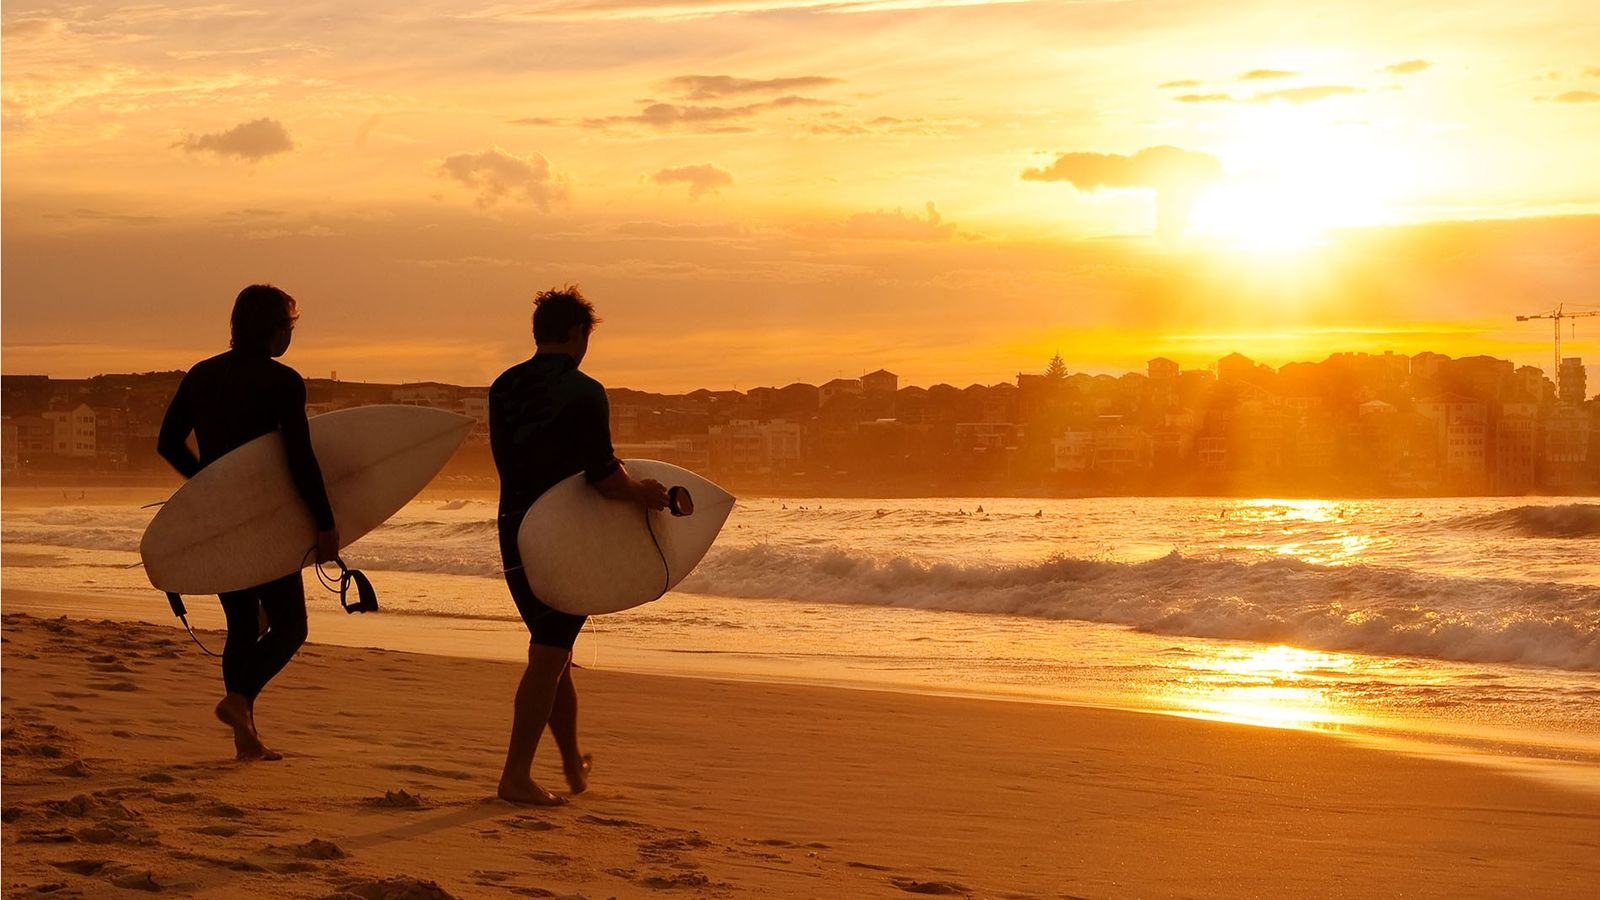 Surf at dawn, Bondi Beach, New South Wales